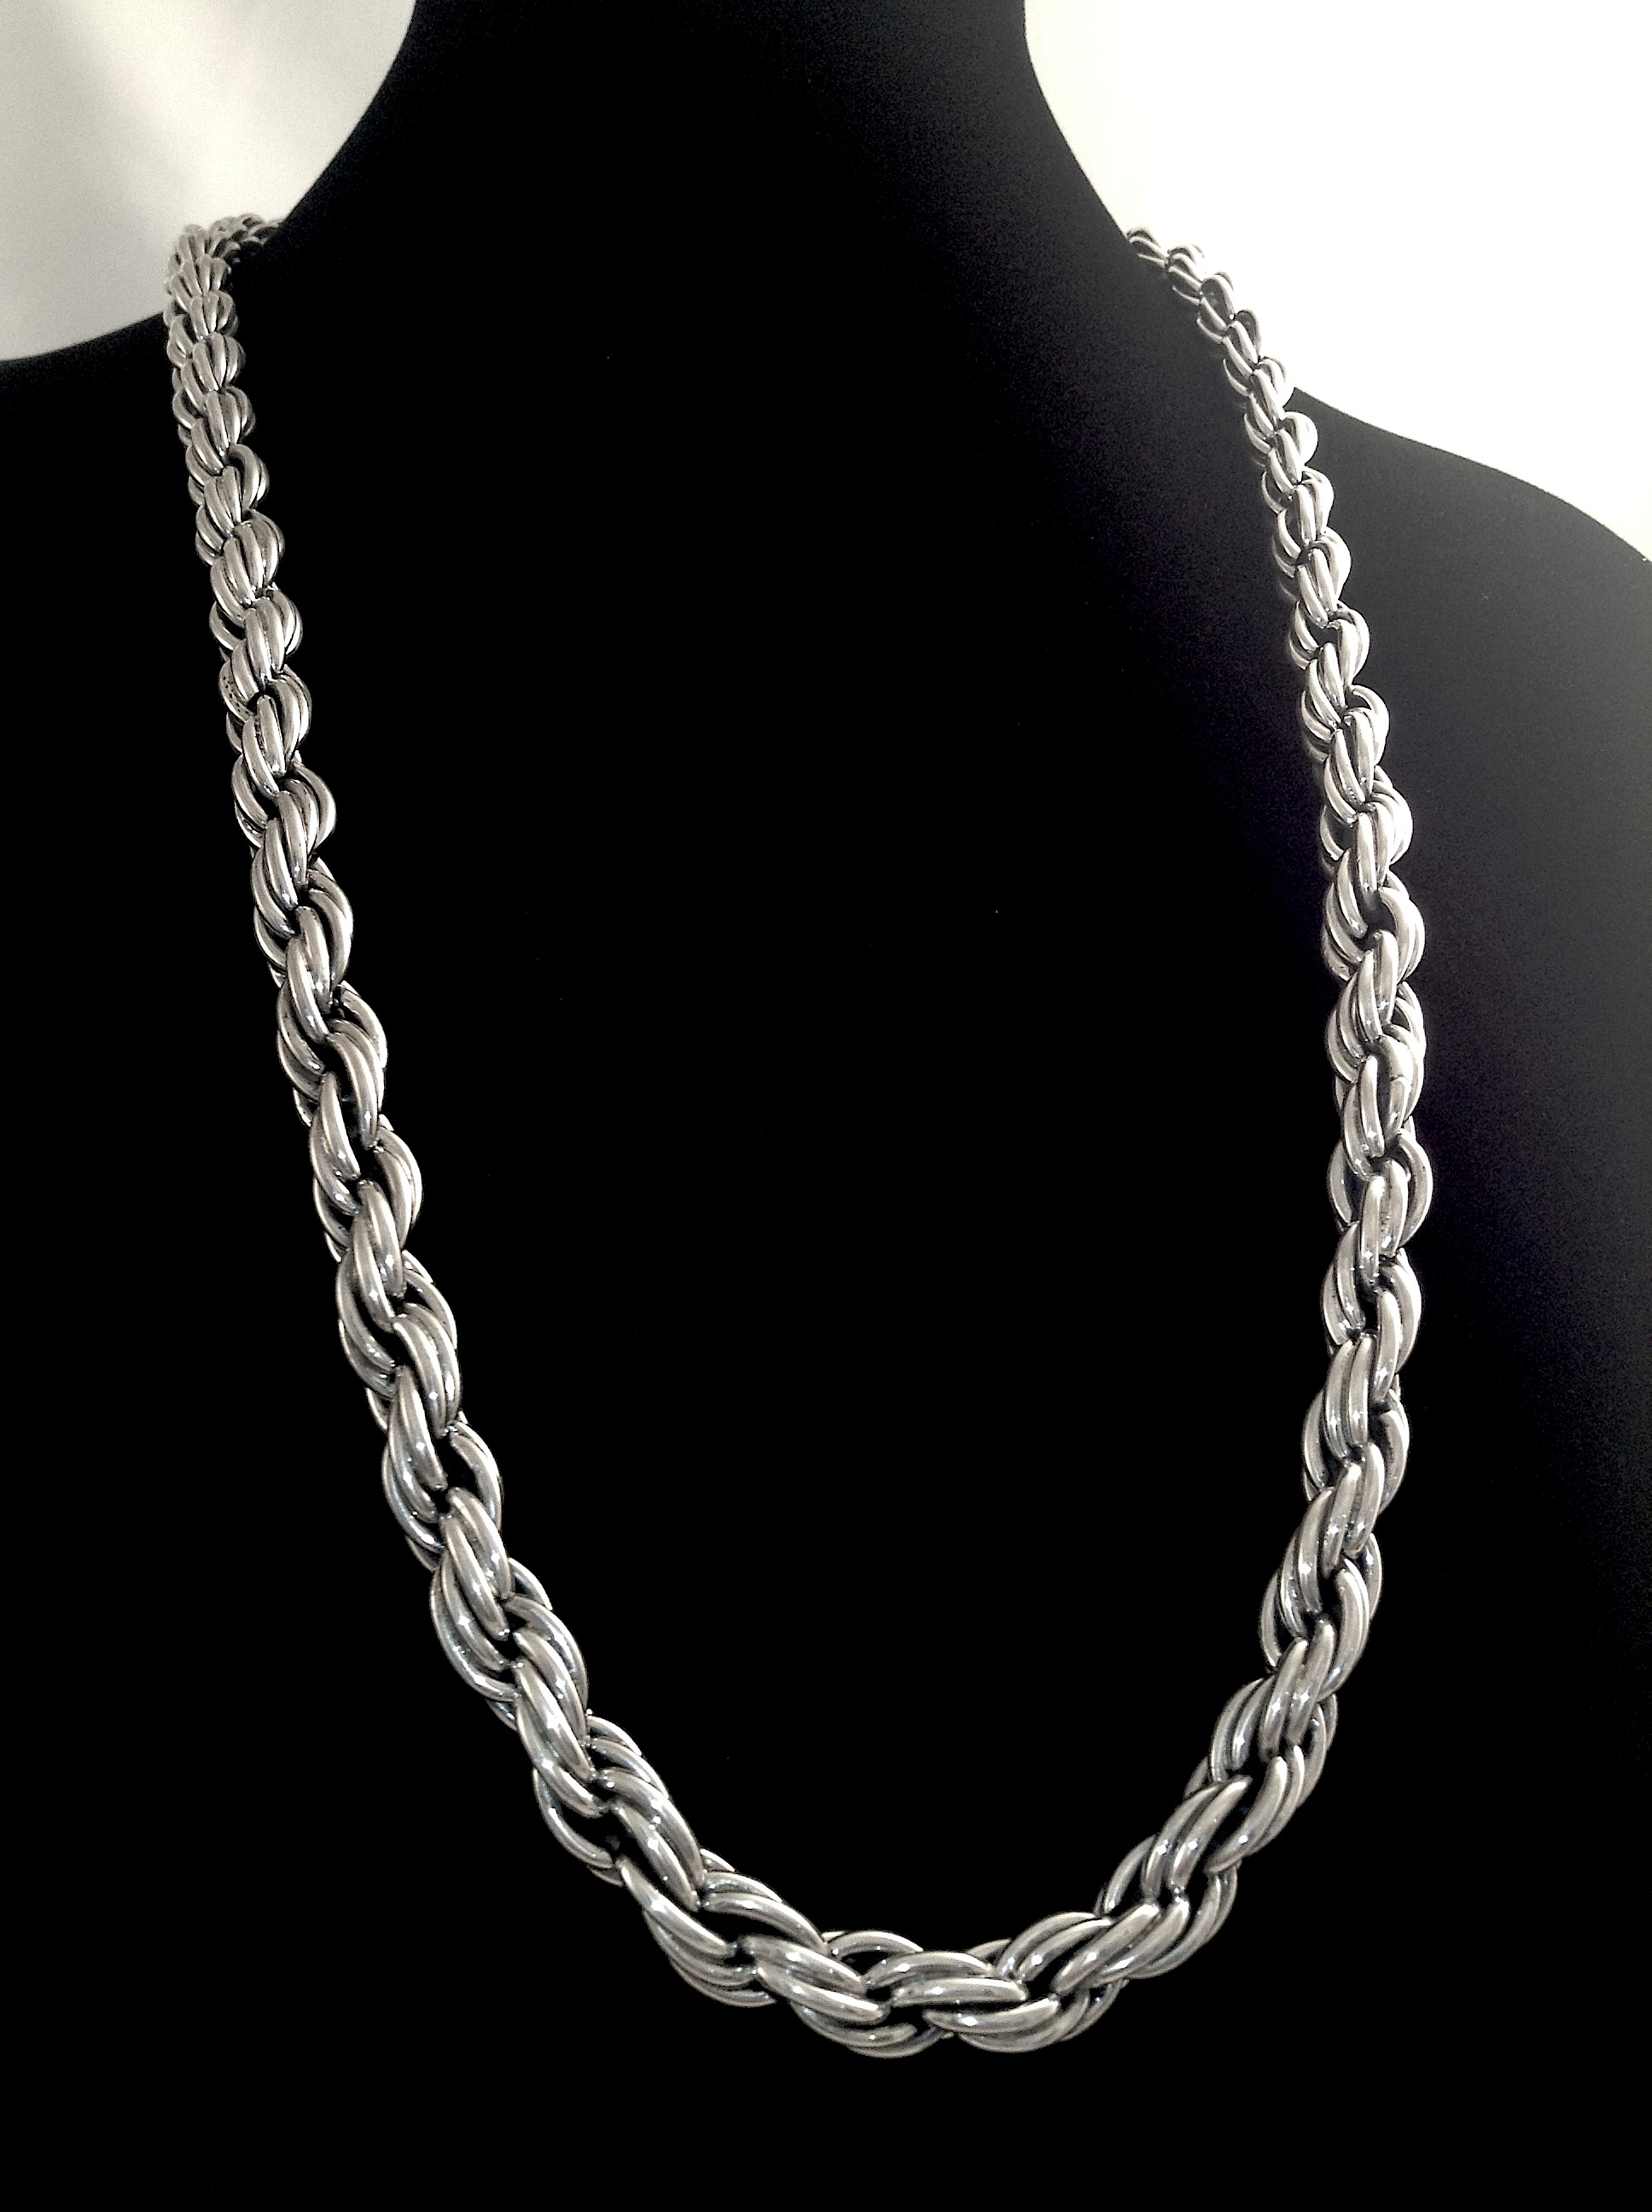 rope chain diamond solid chains sterling silver jewellery drop unisex cut